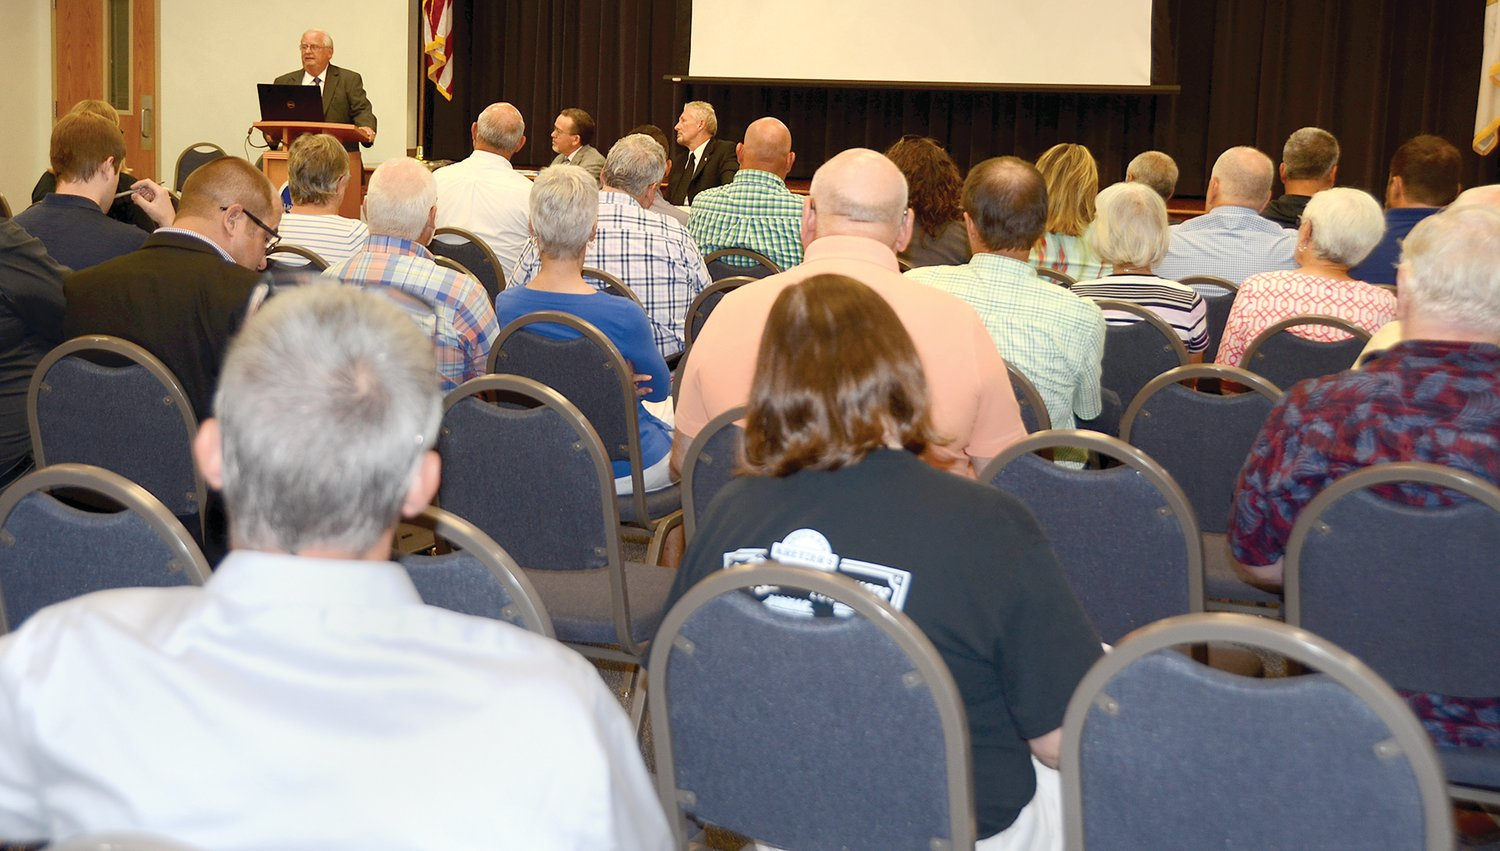 Dr. Bill Phillips addresses a crowd of about 100 local residents during a presentation of the school reorganization study on Monday evening, Aug. 12, at Lincoln Land Community College in Litchfield.